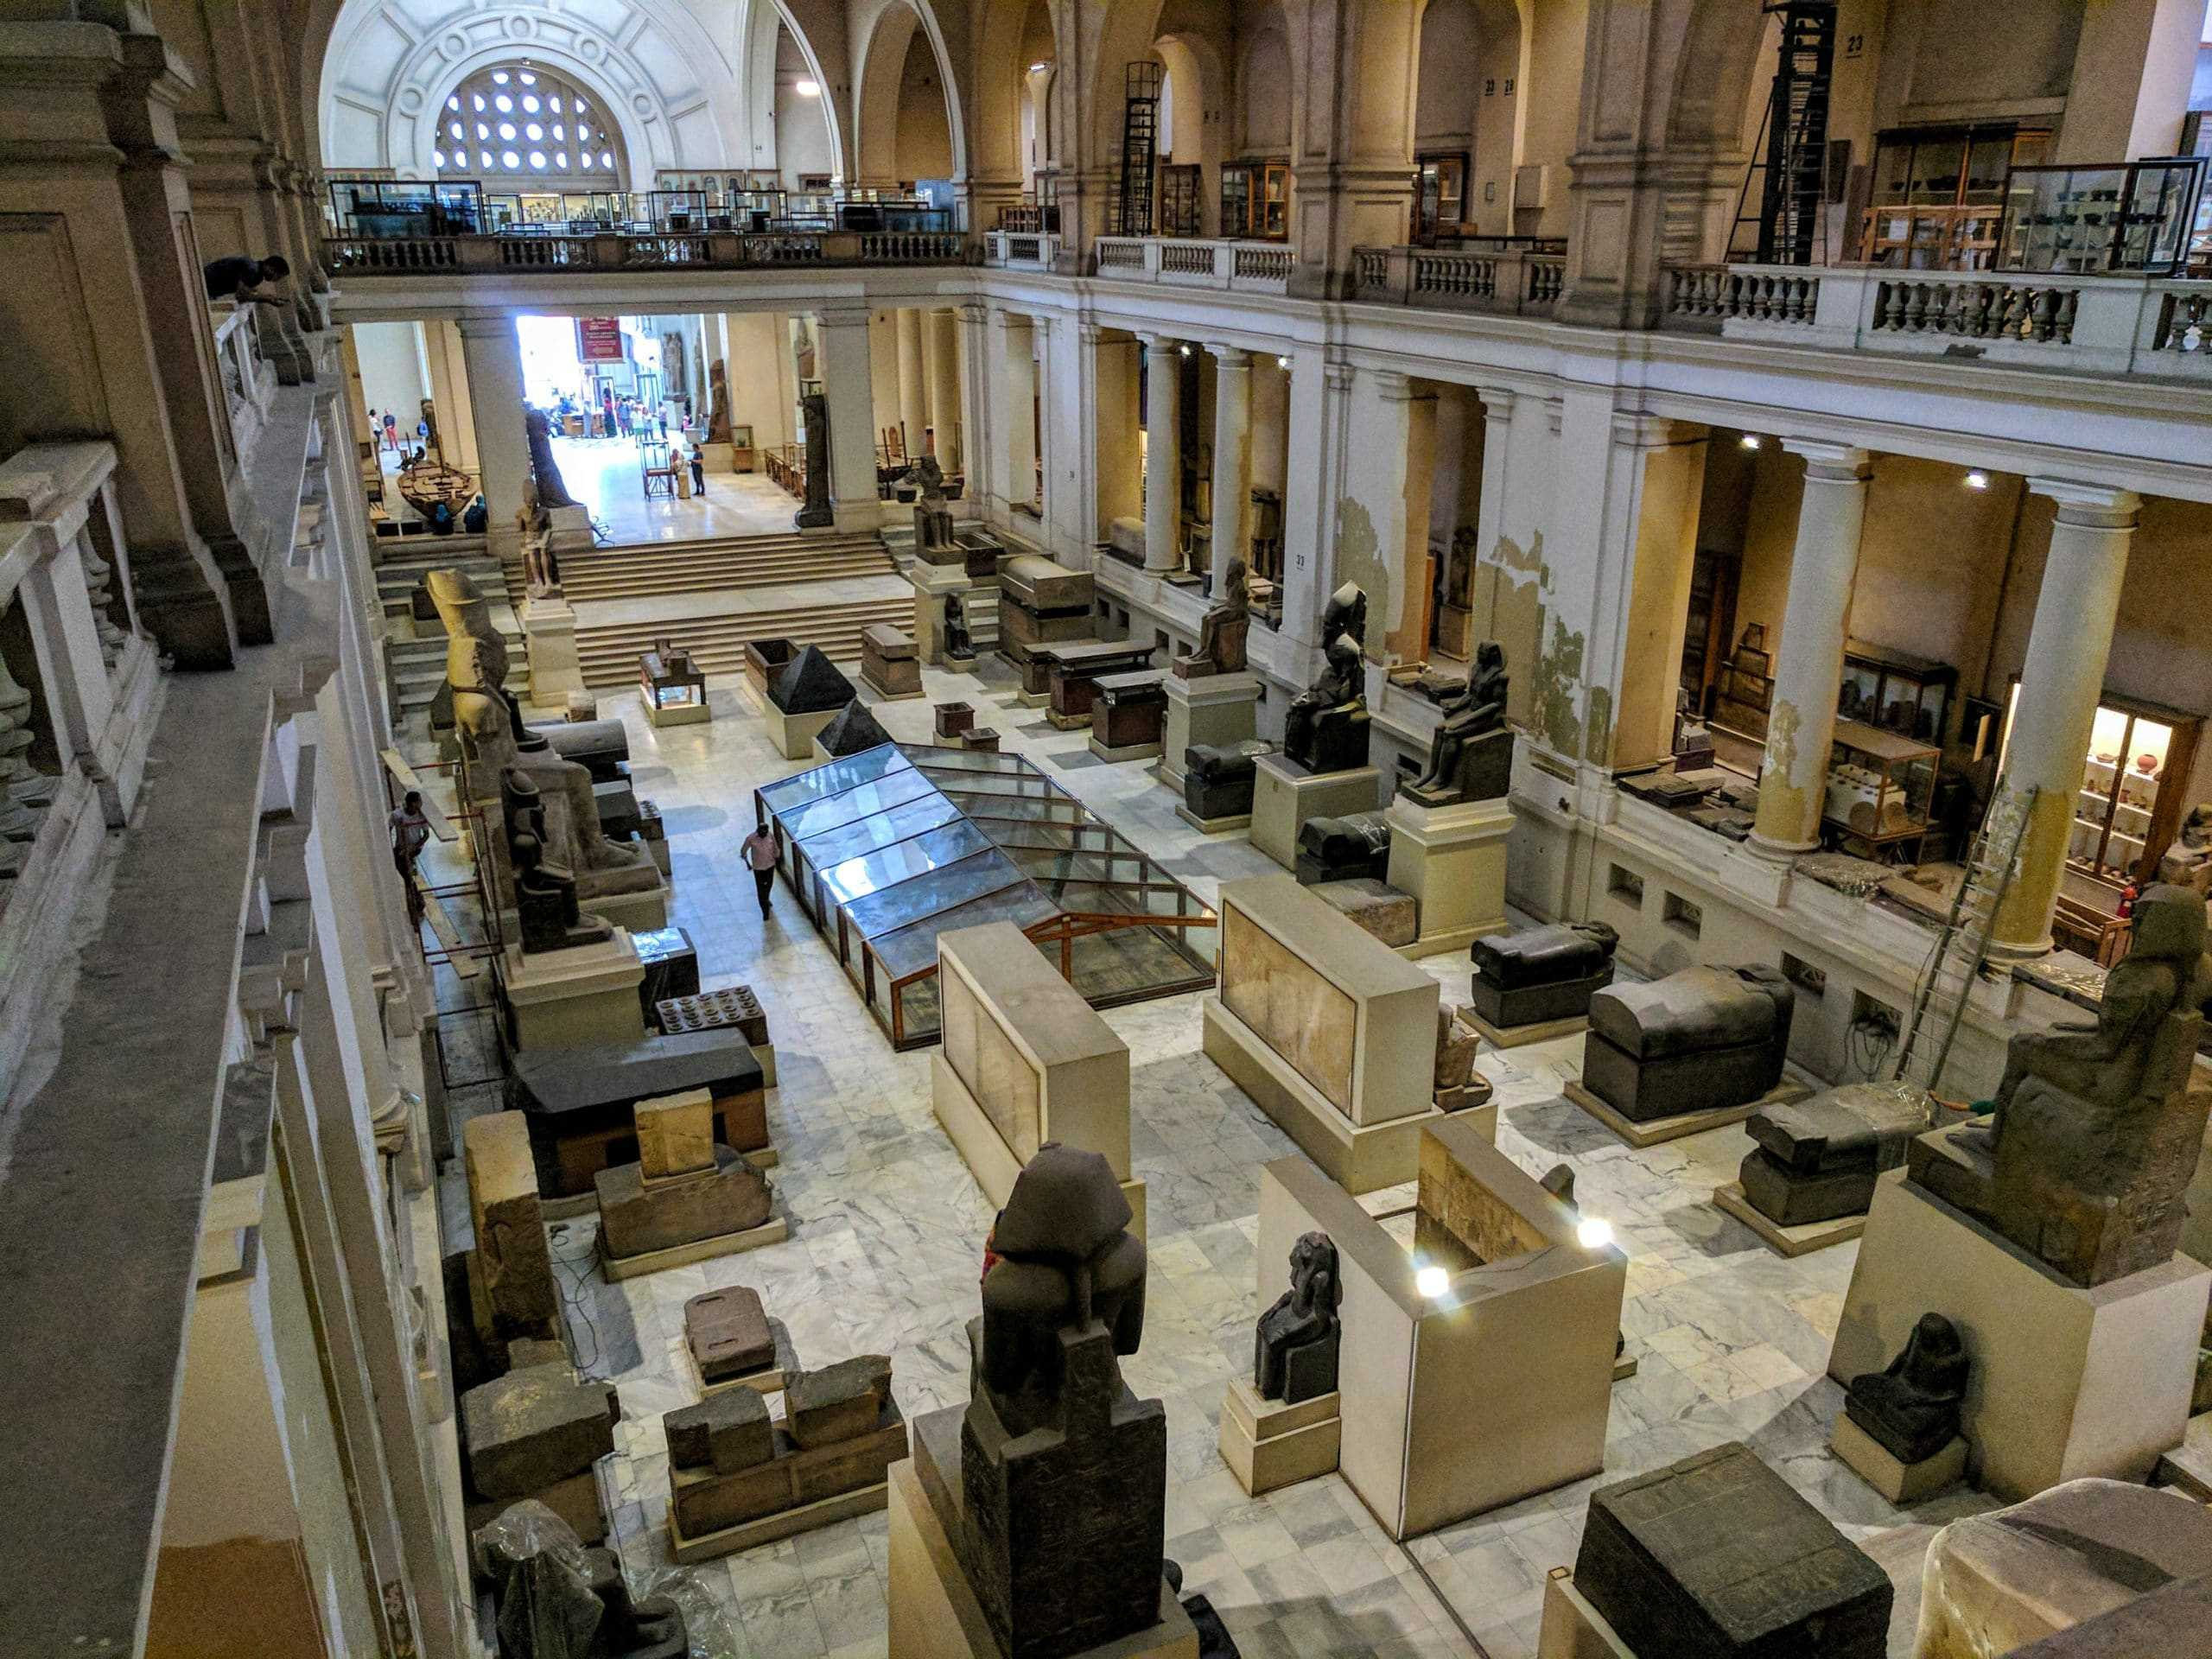 Inside the Cairo Museum (upper view)